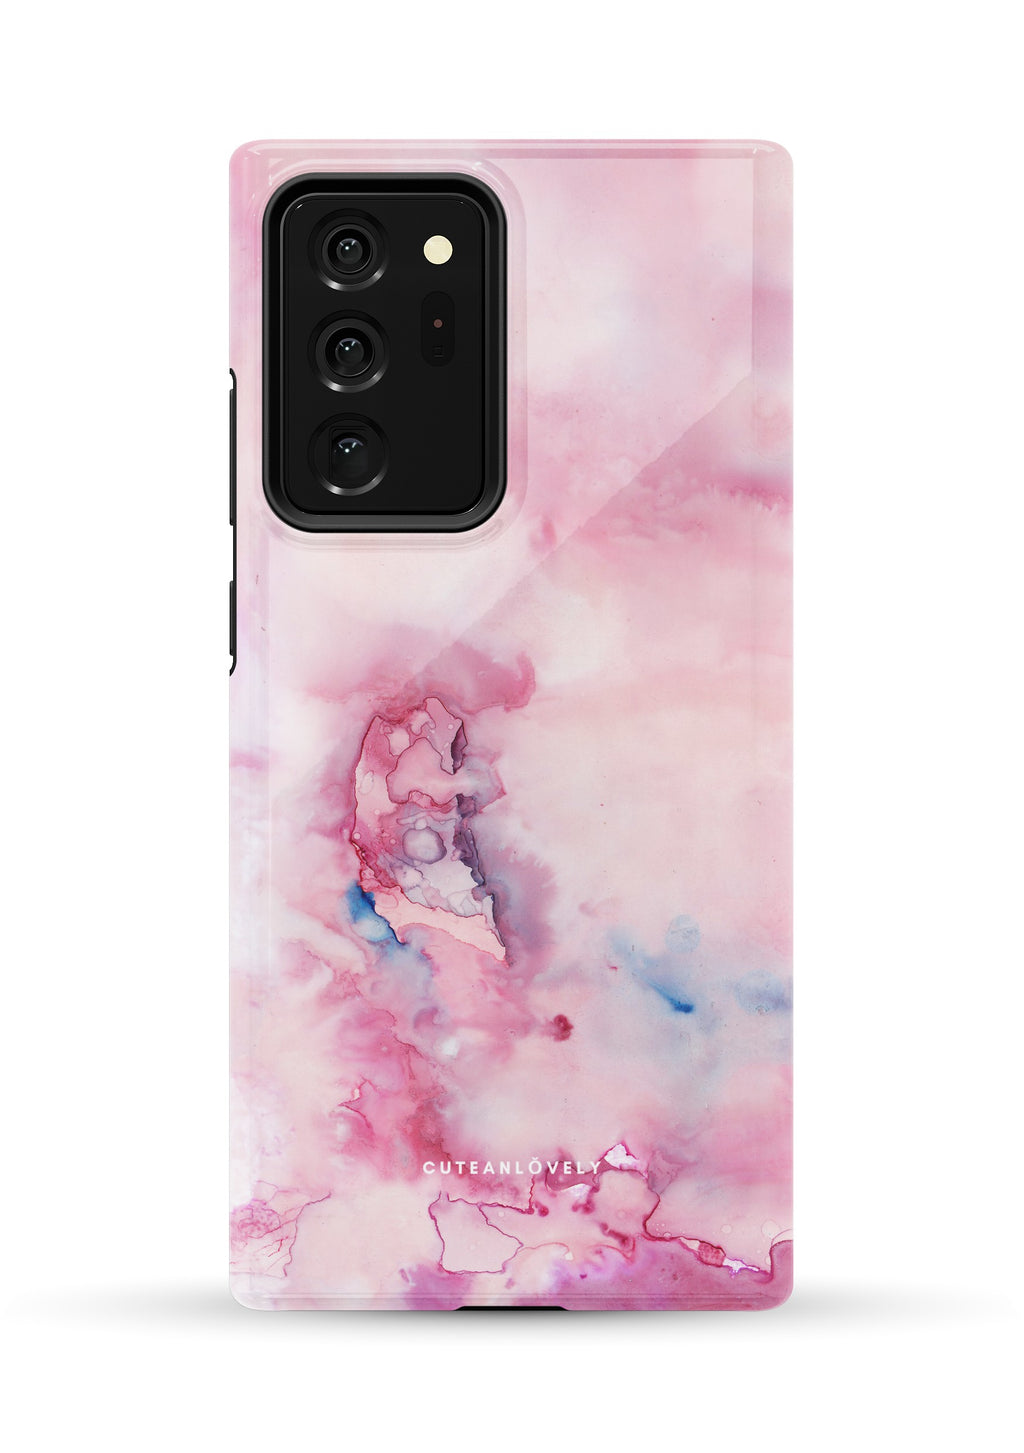 CUTEANLOVELY - Taffy Cloud Marble Samsung Galaxy Note 20 Ultra Case